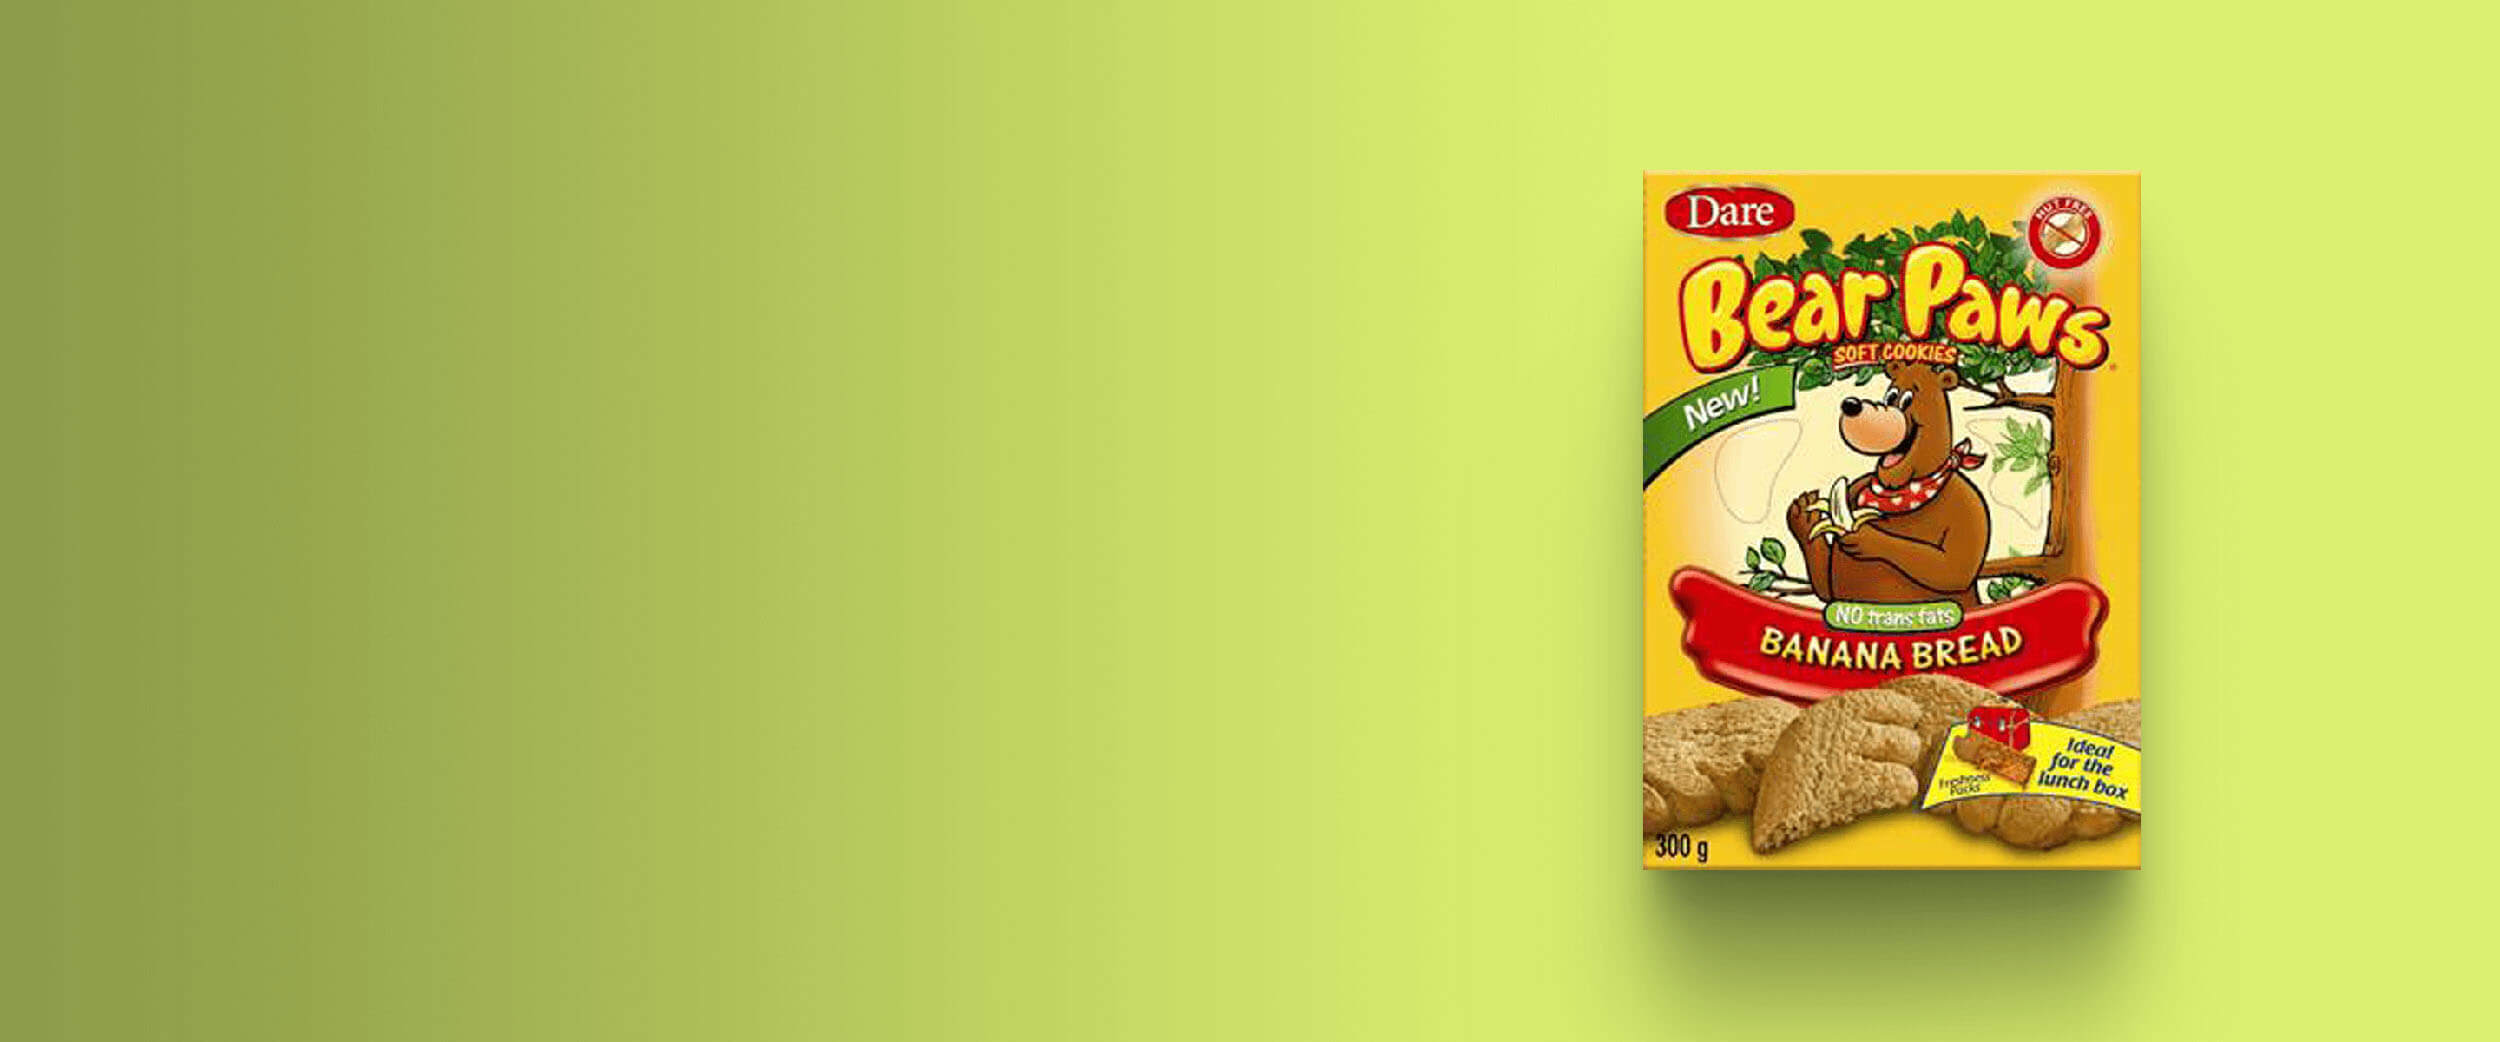 Bear Paws Soft Cookies Goes Nationwide